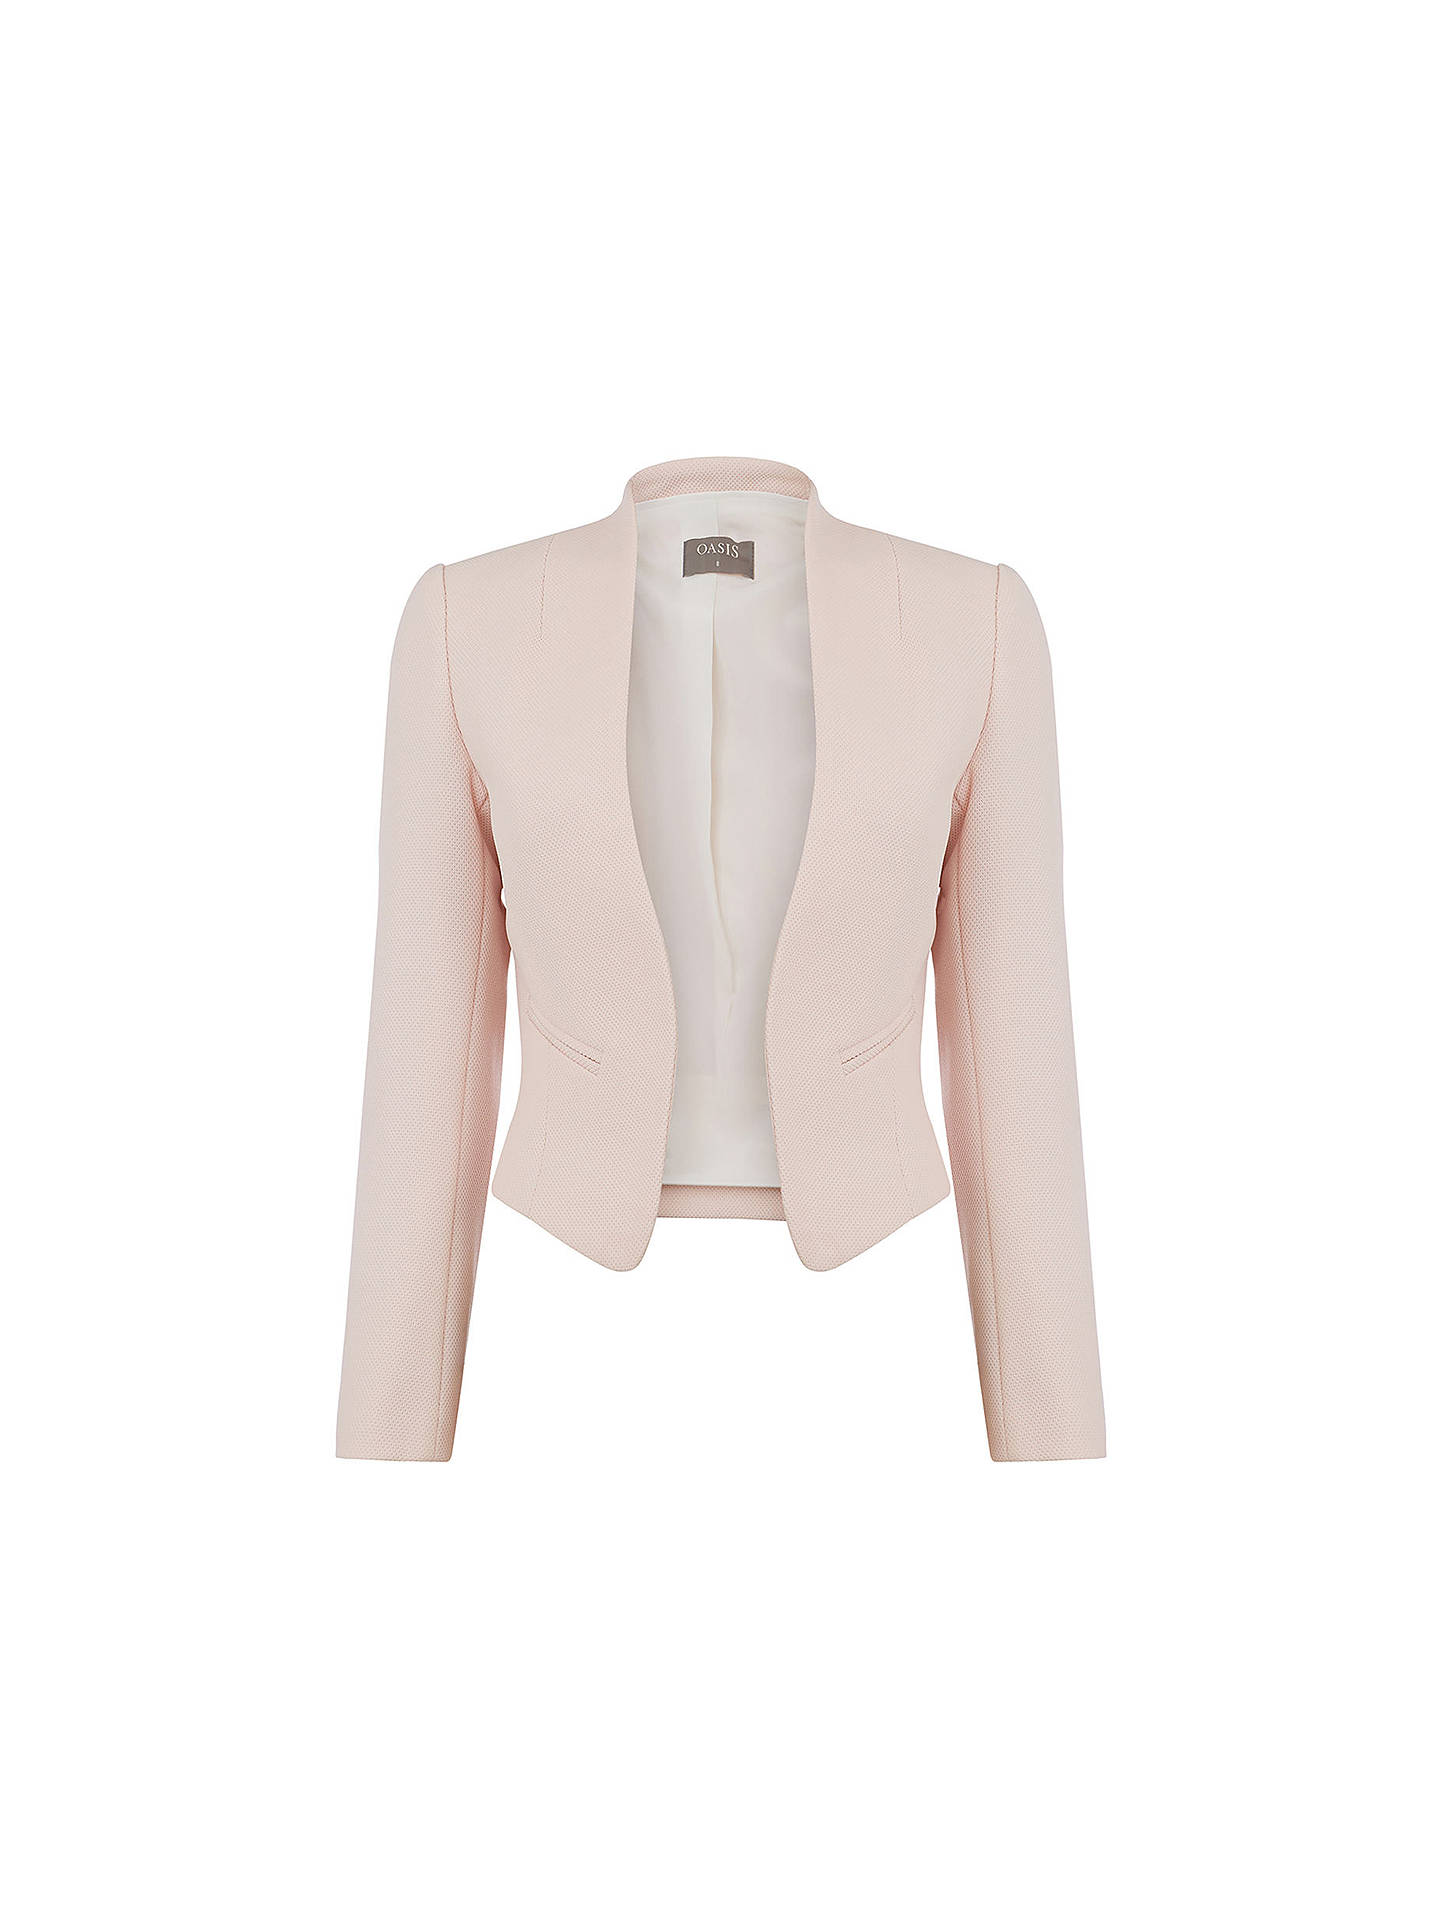 Buy Oasis Crop Event Jacket, Light Neutral, 6 Online at johnlewis.com